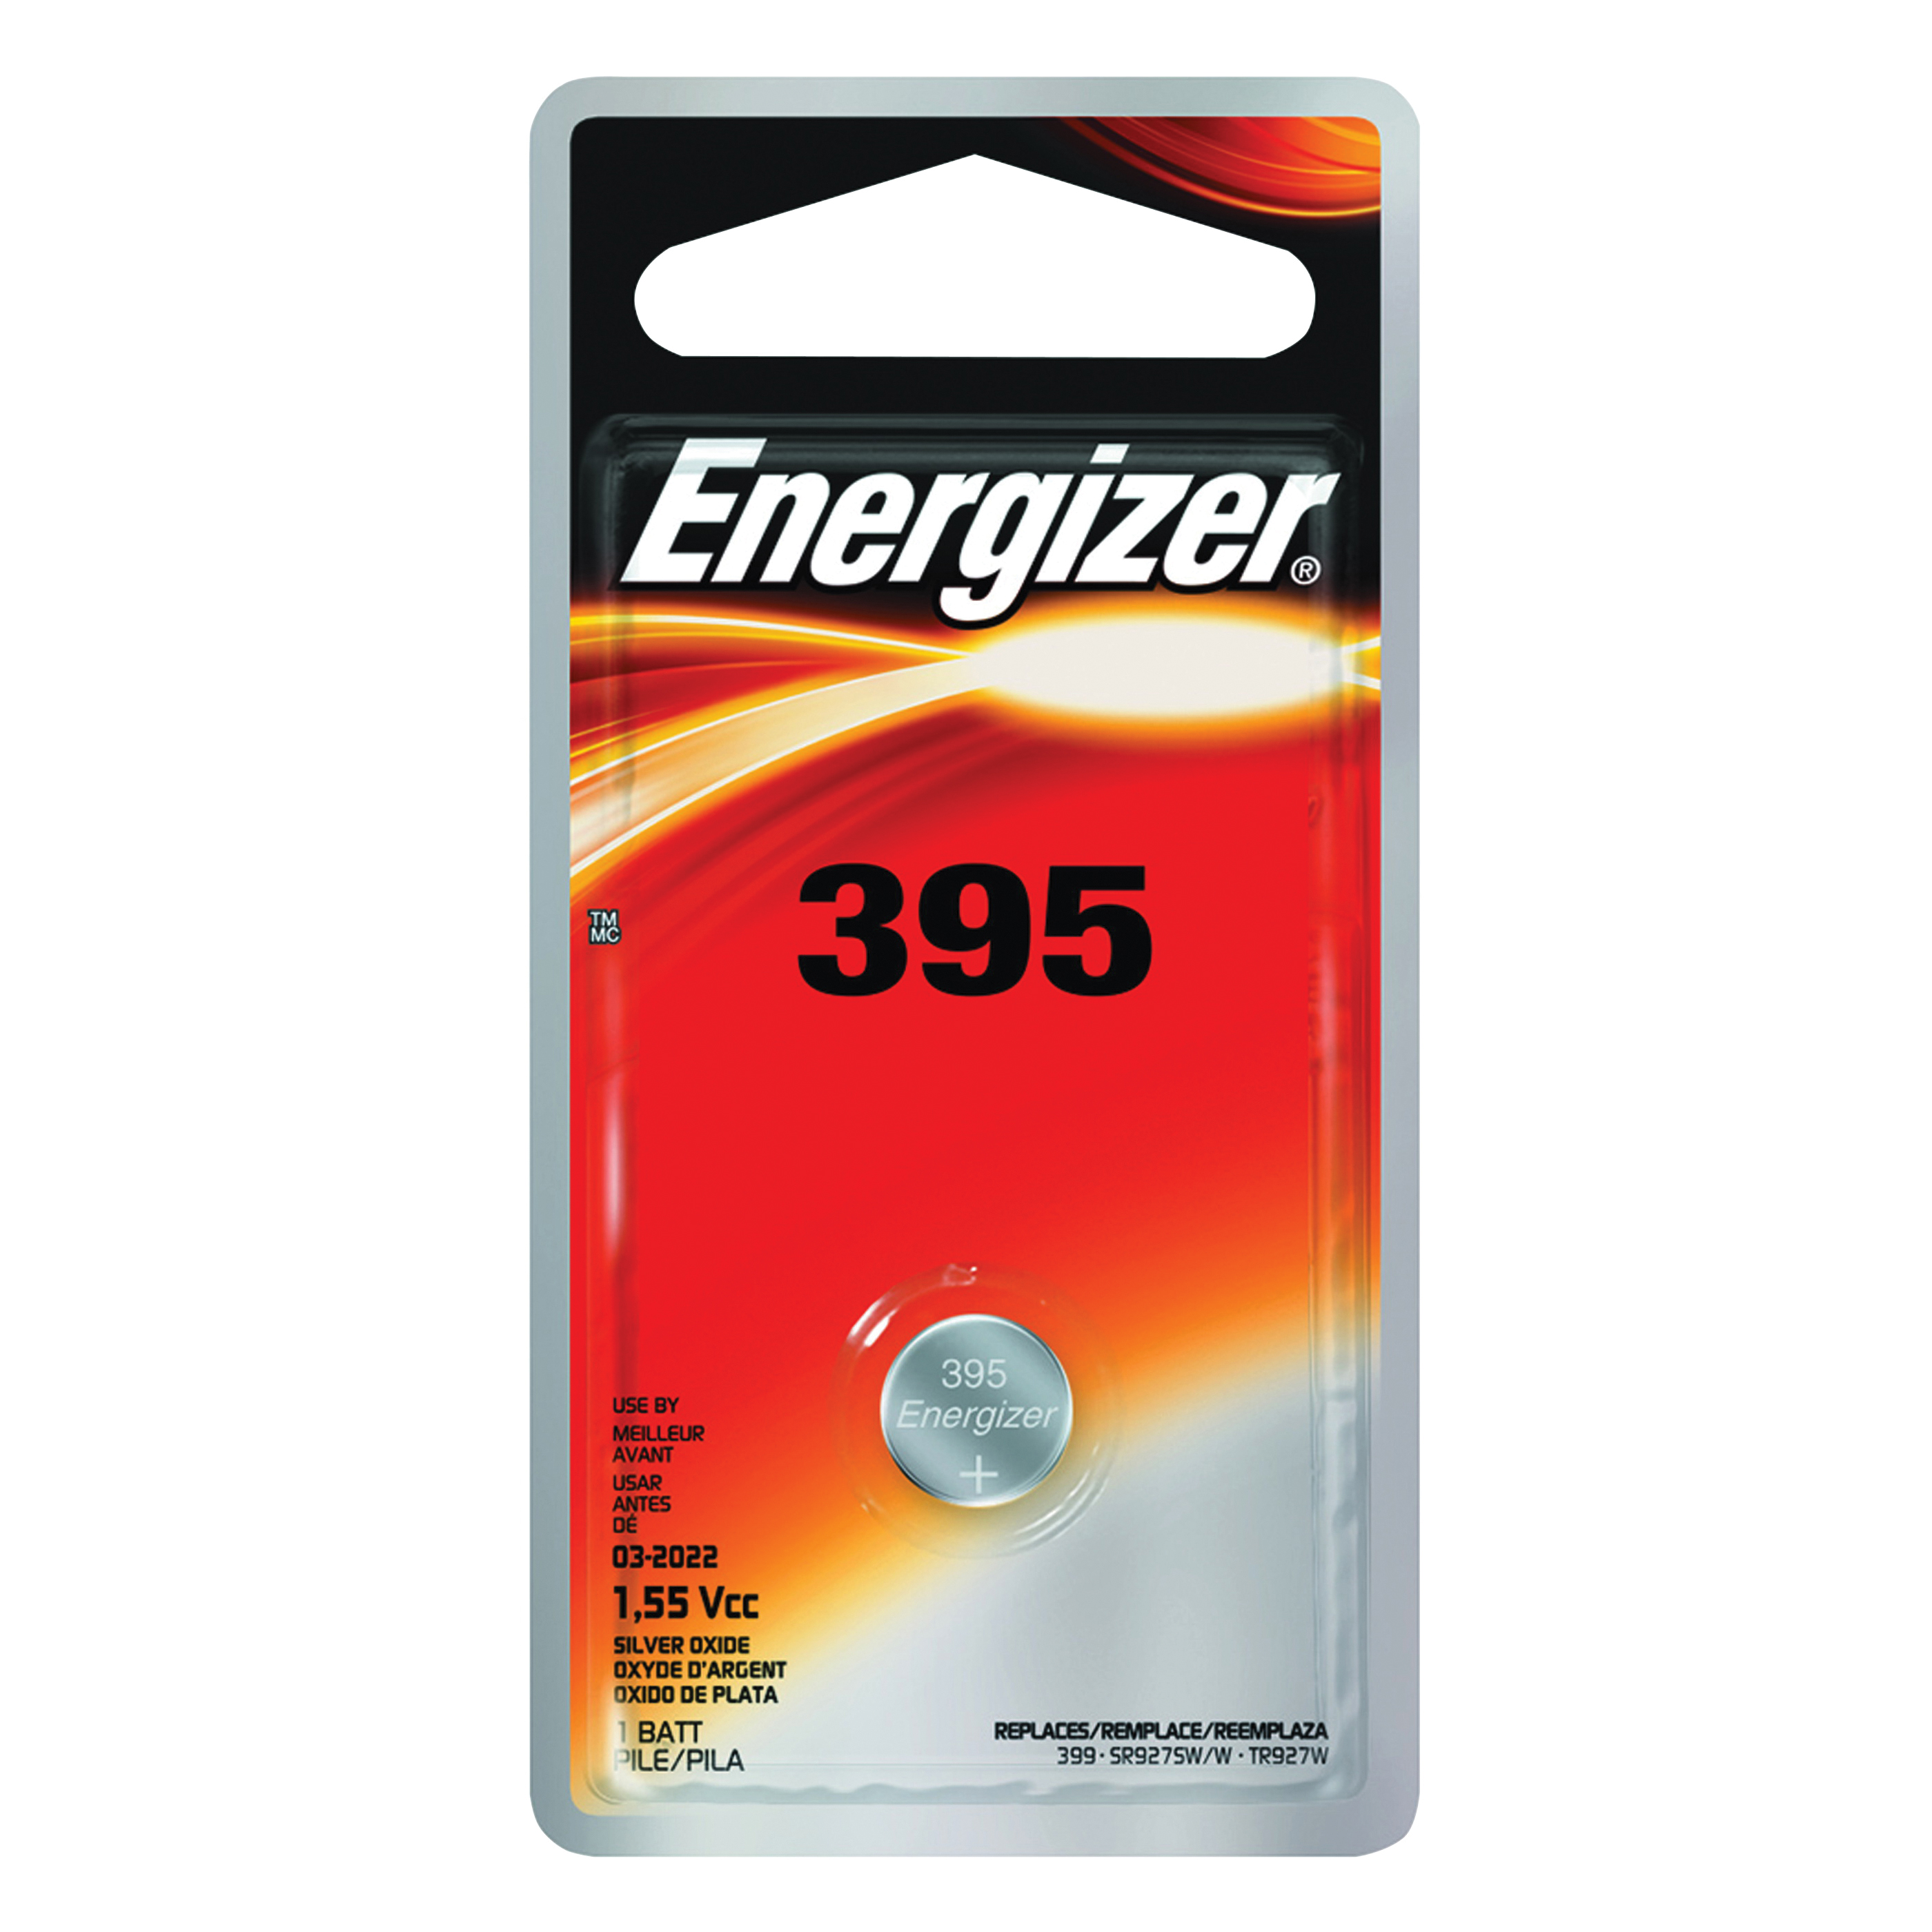 Picture of Energizer 395BPZ Coin Cell Battery, 1.5 V Battery, 51 mAh, 395 Battery, Silver Oxide